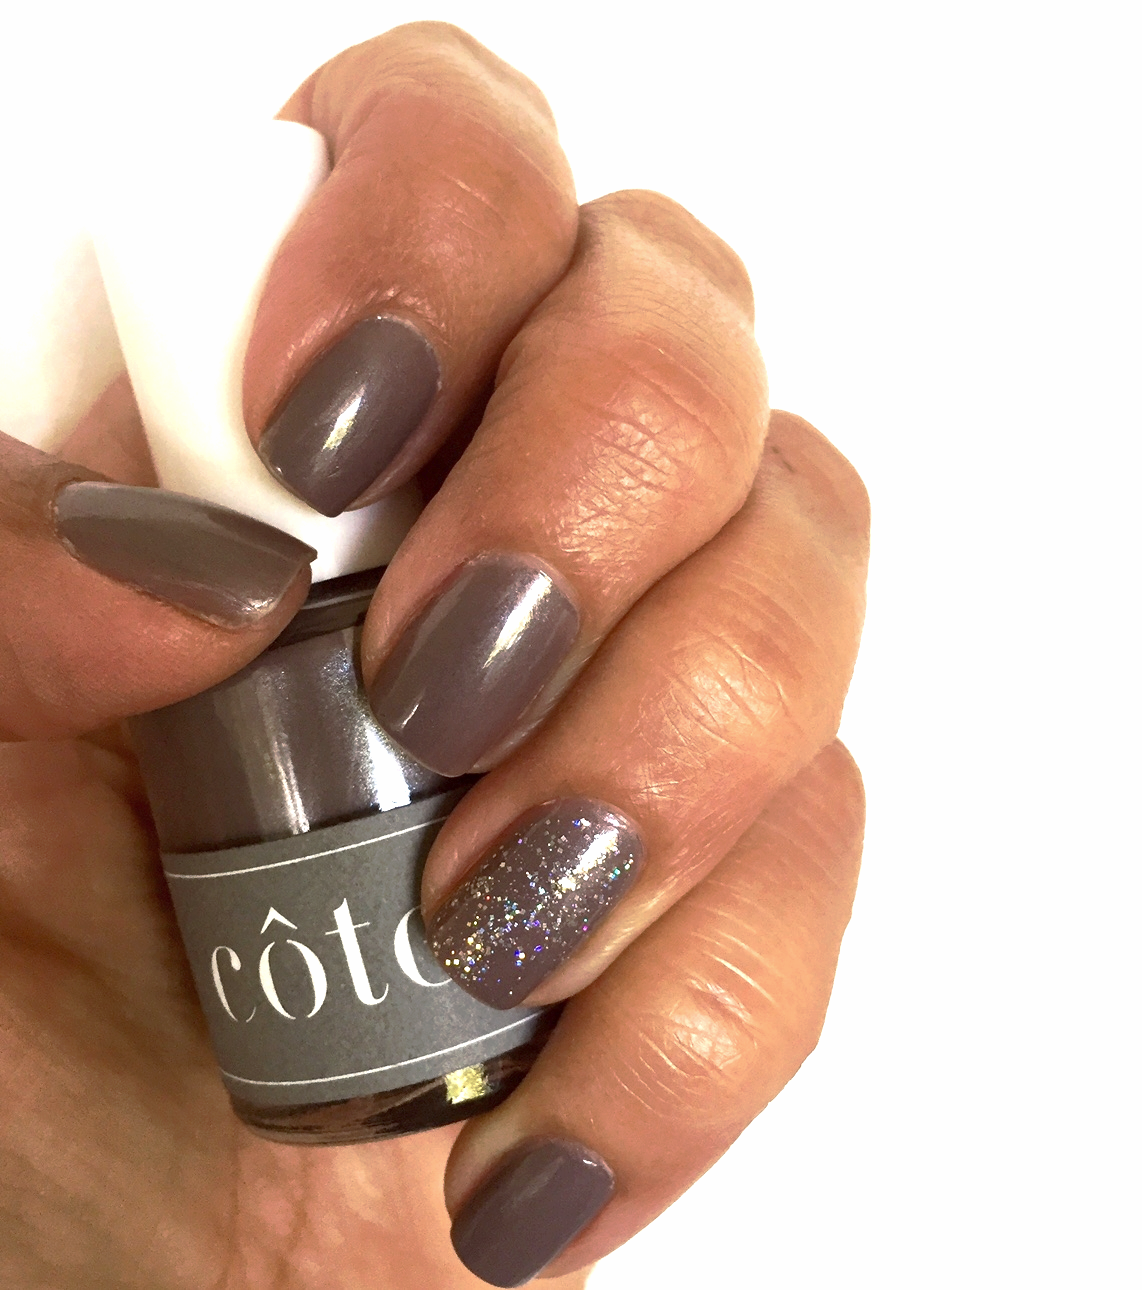 Cote Color No. 40  and  OPI Fabulous Is My Middle Name  on accent nail.